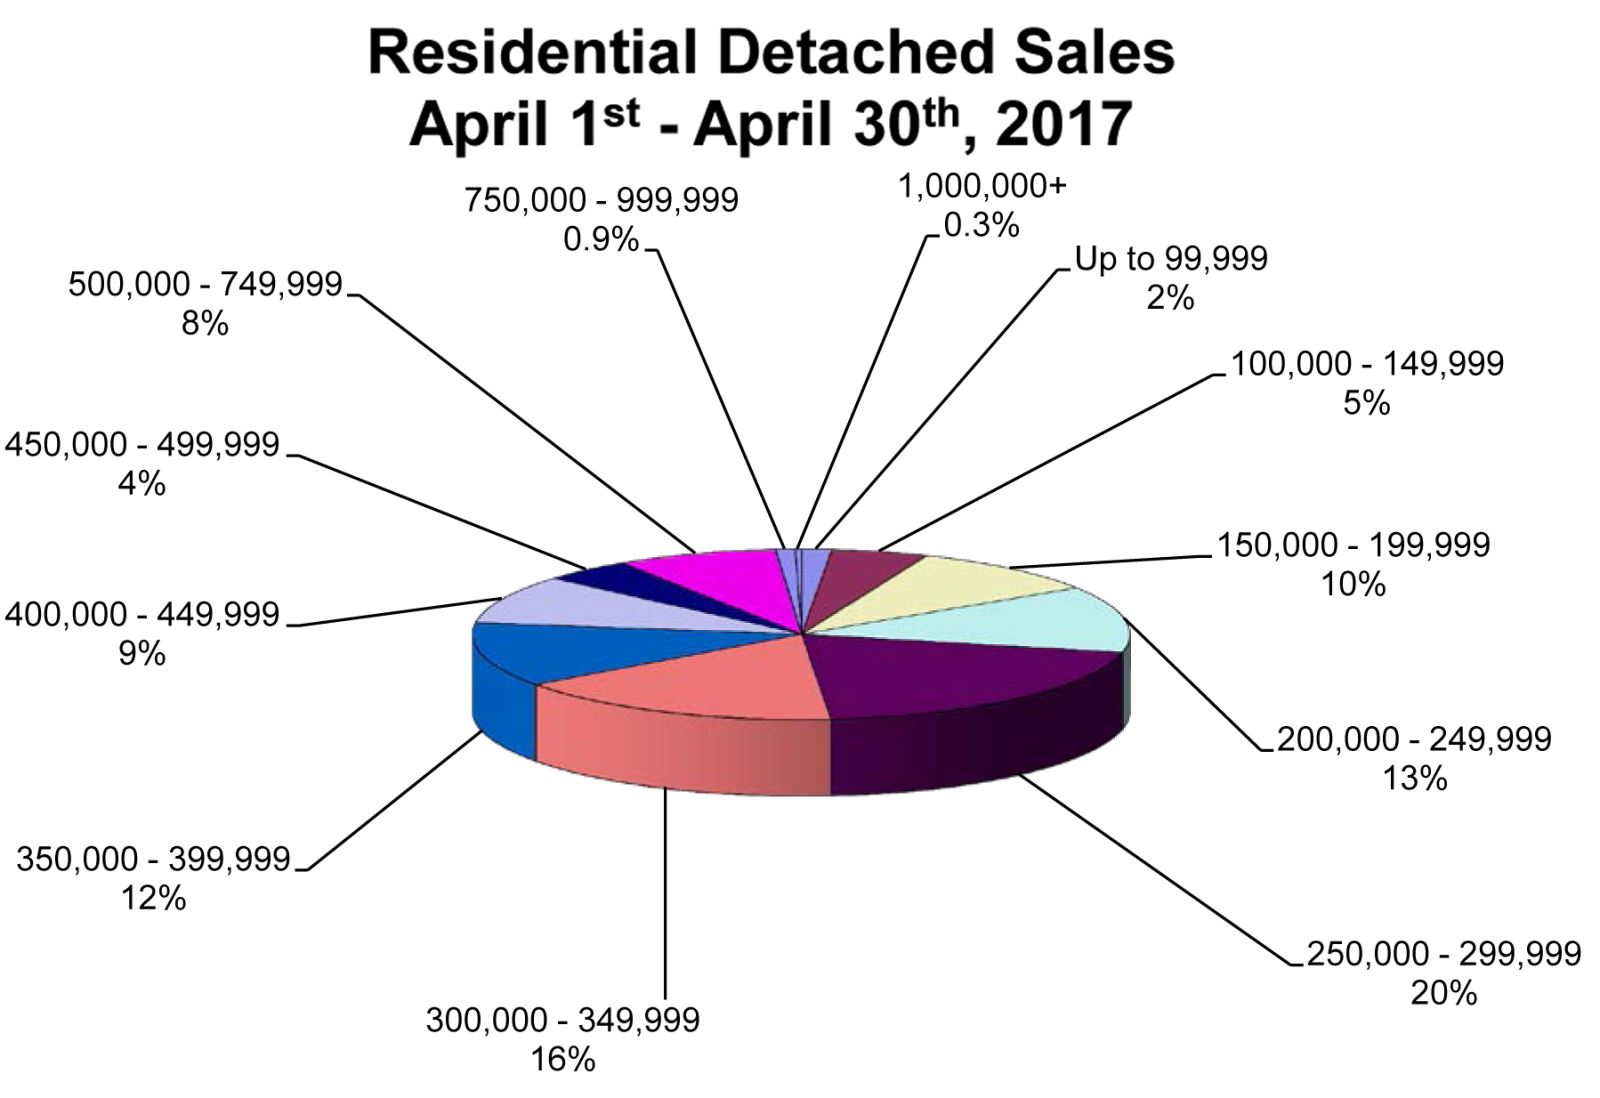 RD Sales Pie Chart April 2017.jpg